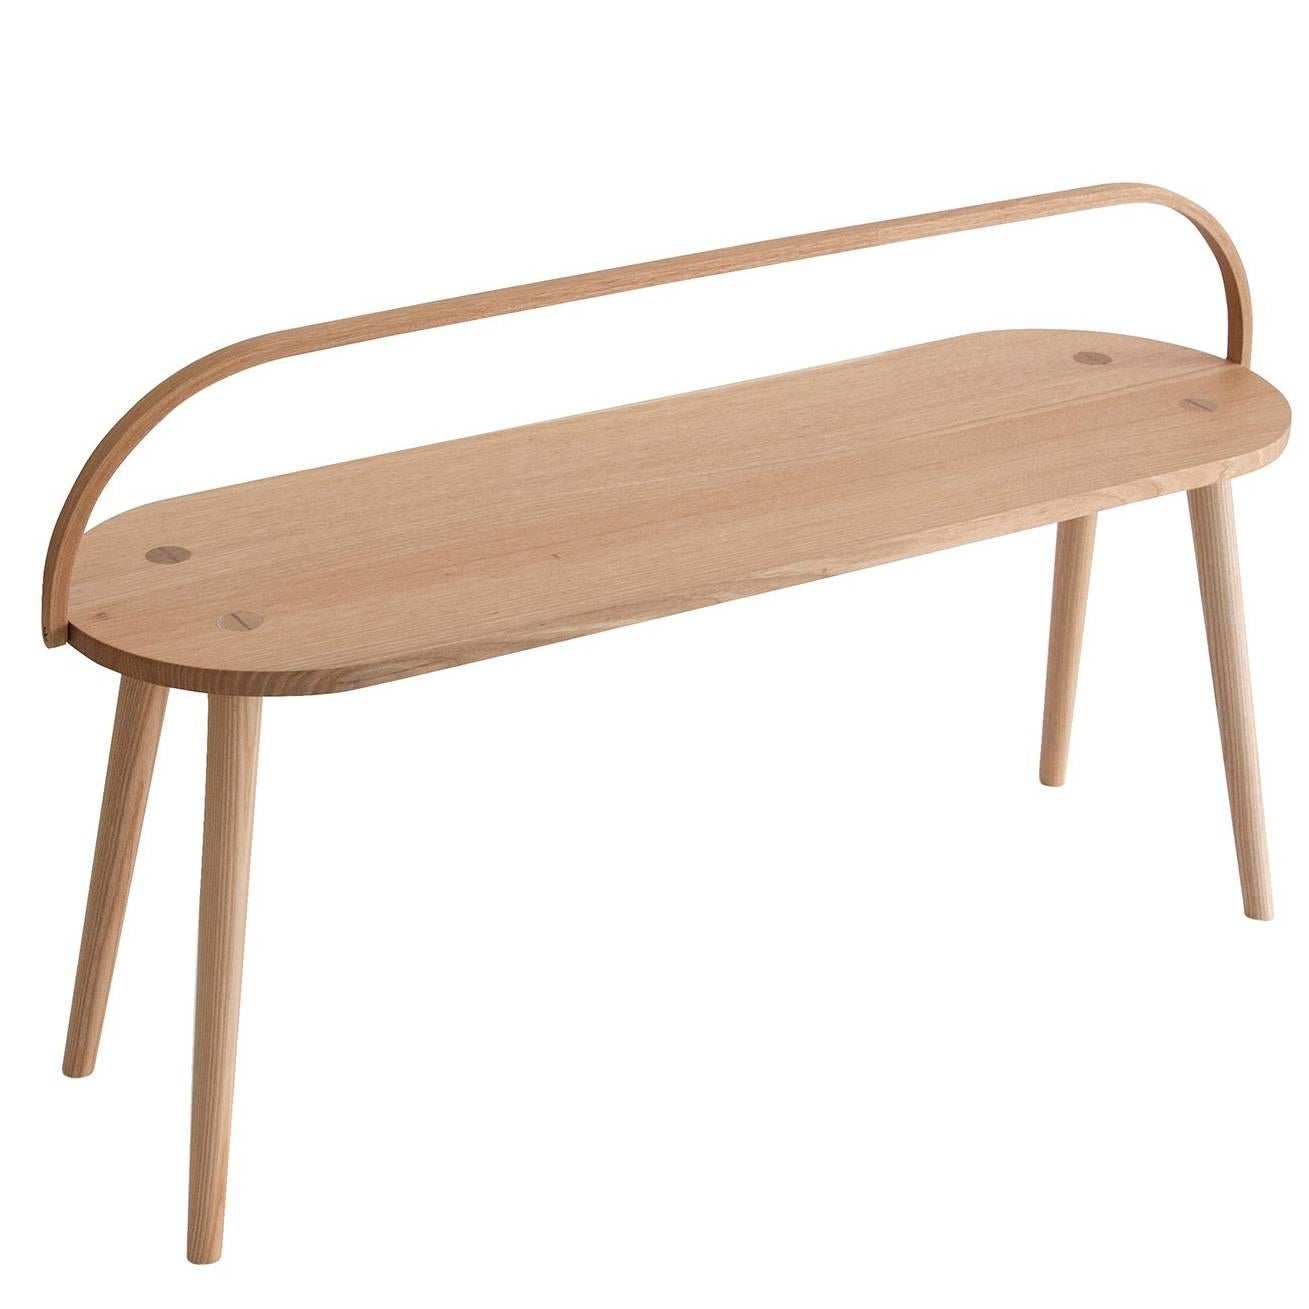 Bucket Bench, Modern Long Side Table Or Seat With Bentwood Handle In Solid  Ash For